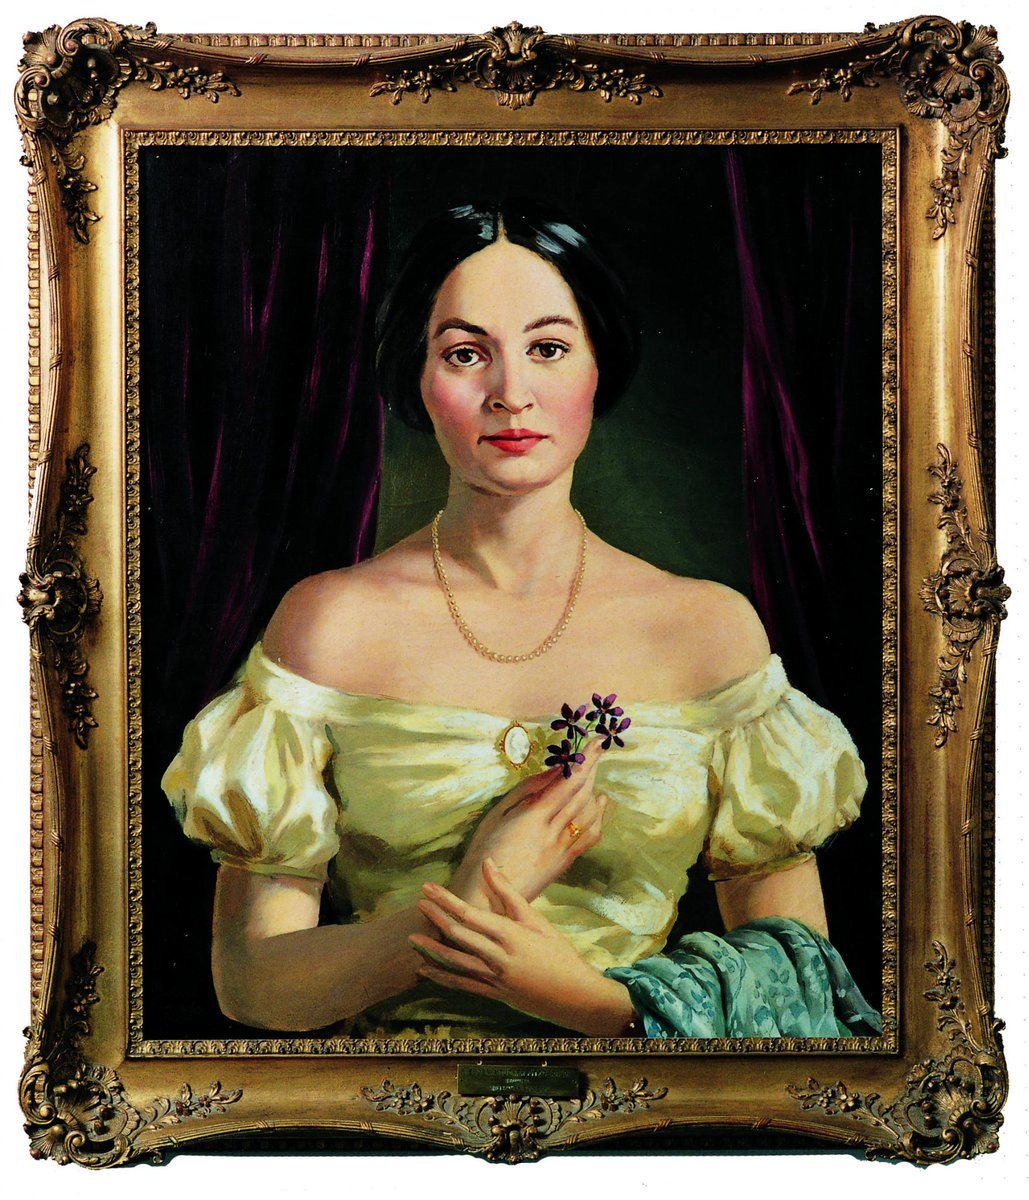 Happy Birthday to the woman who started it all, Eugenia Tucker Fitzgerald!! http://t.co/WId6utSBwv